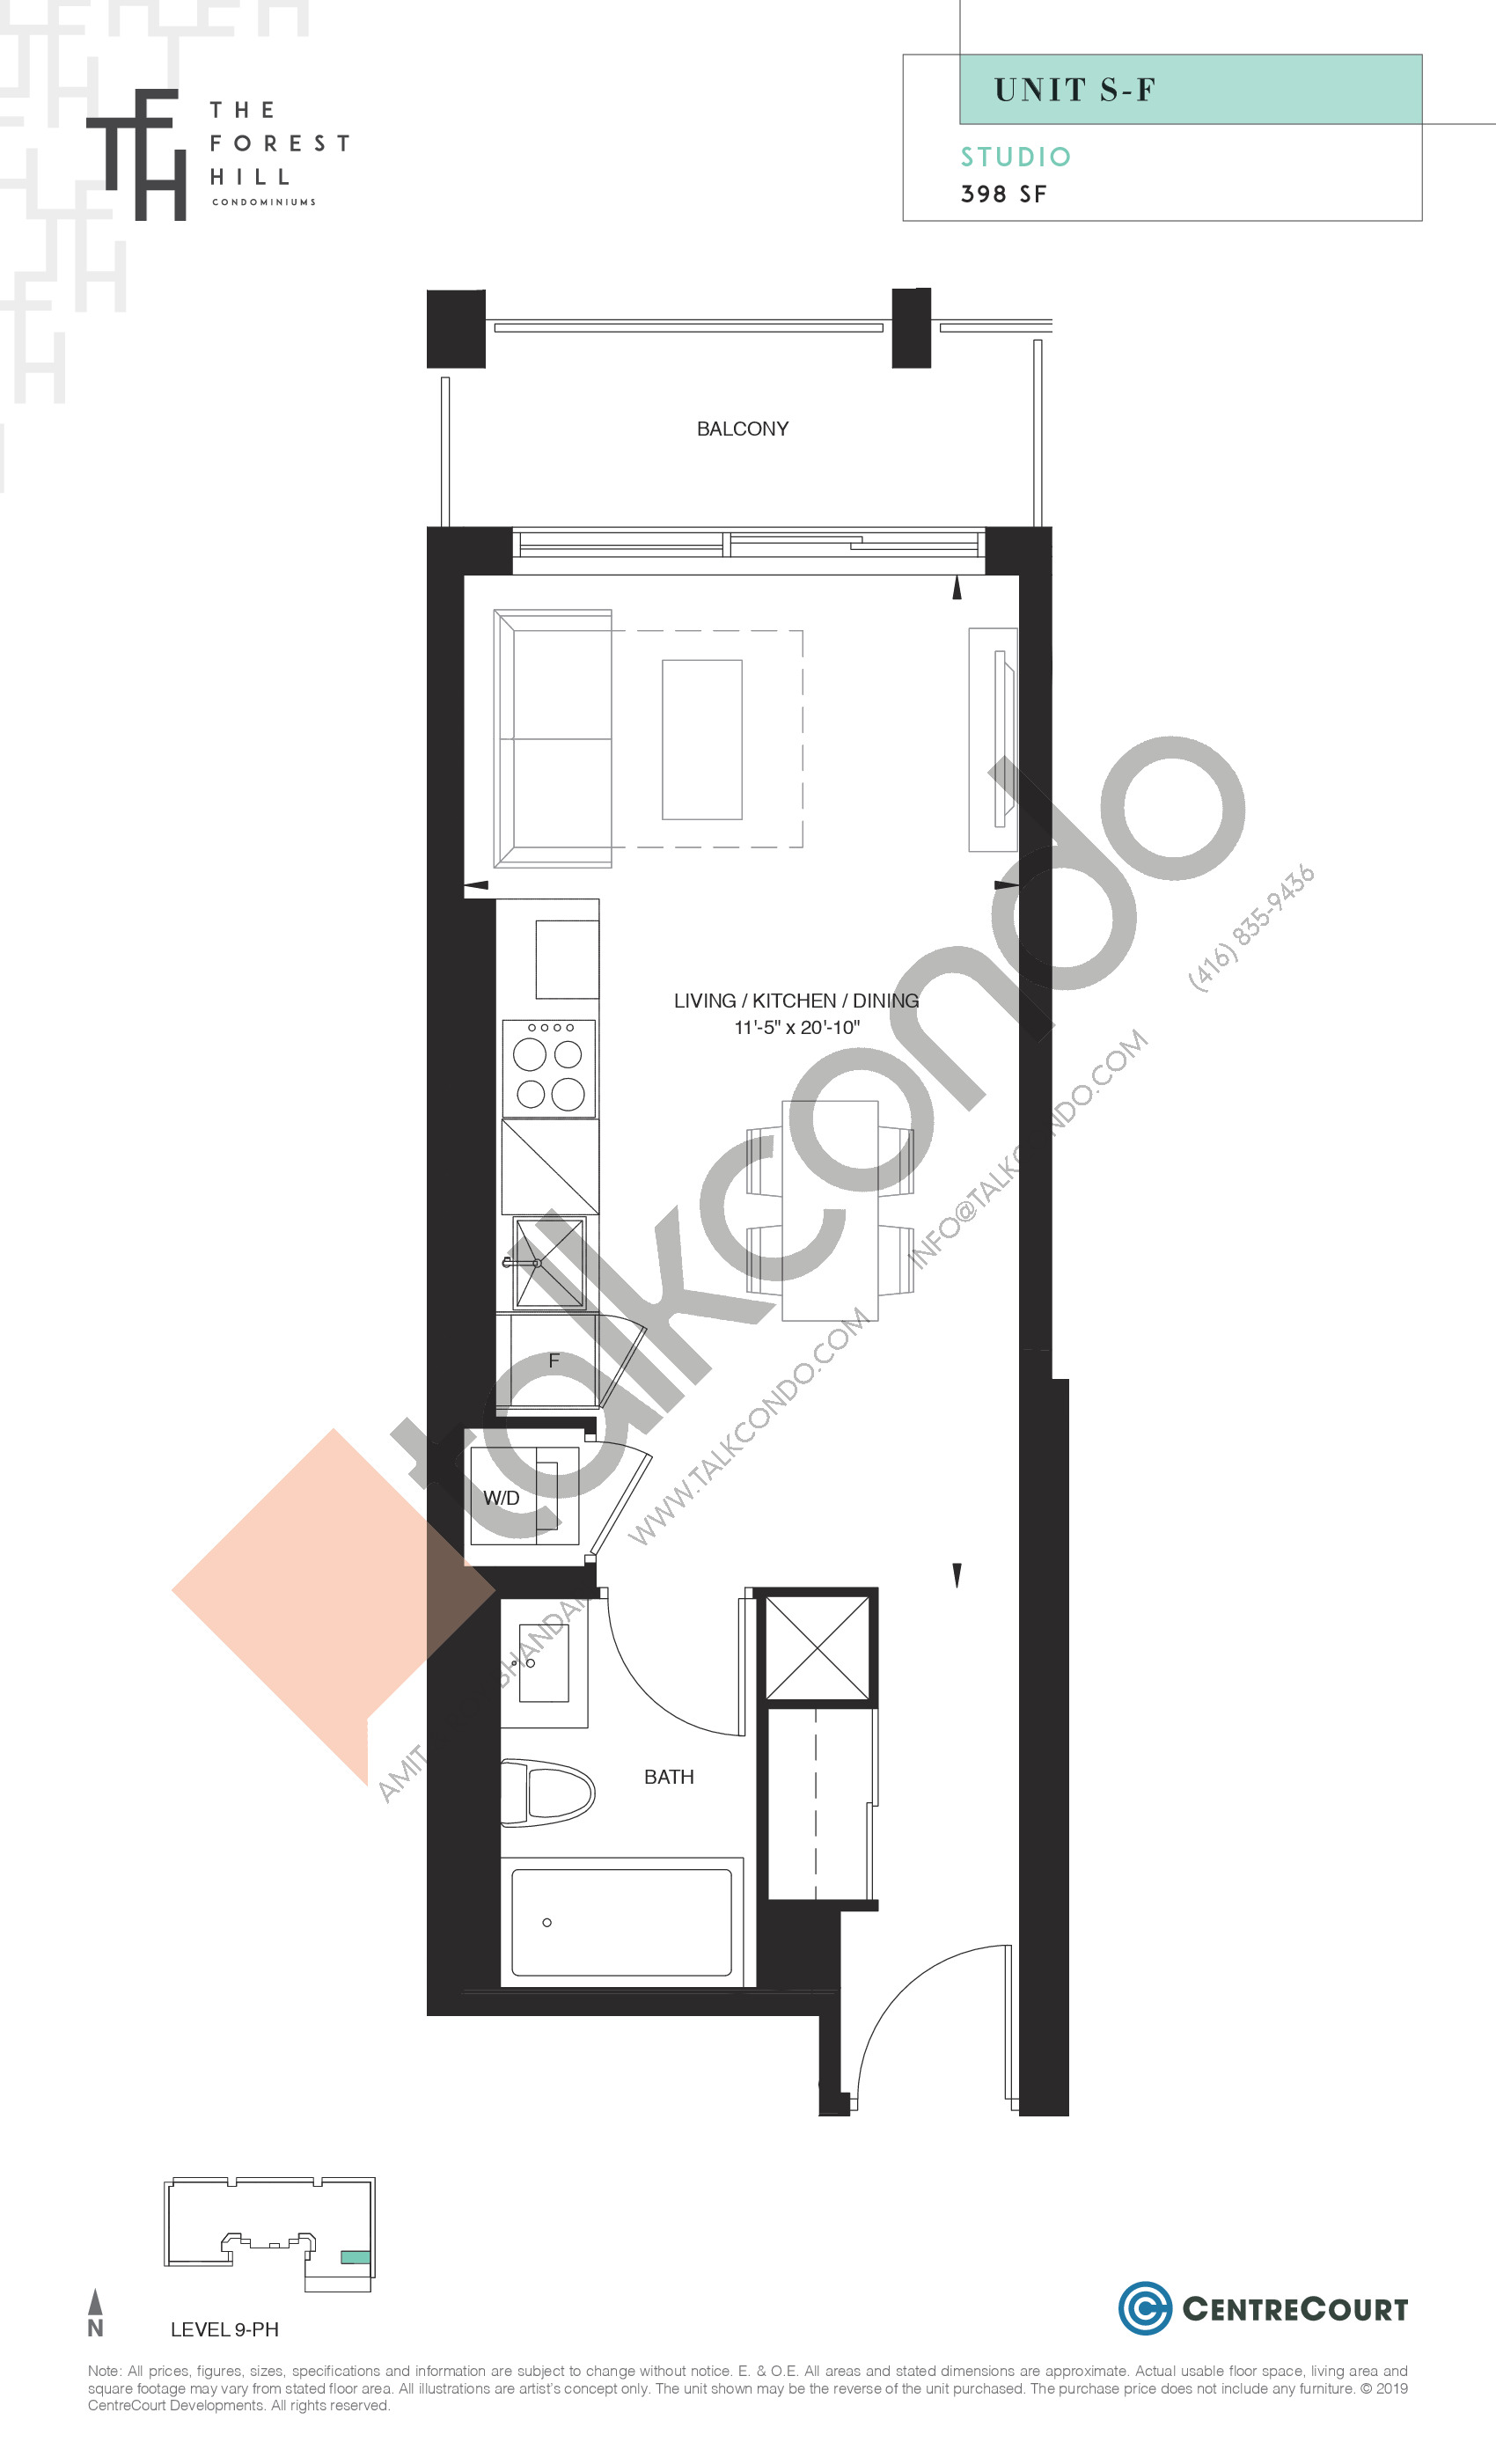 Unit S-F Floor Plan at The Forest Hill Condos - 398 sq.ft